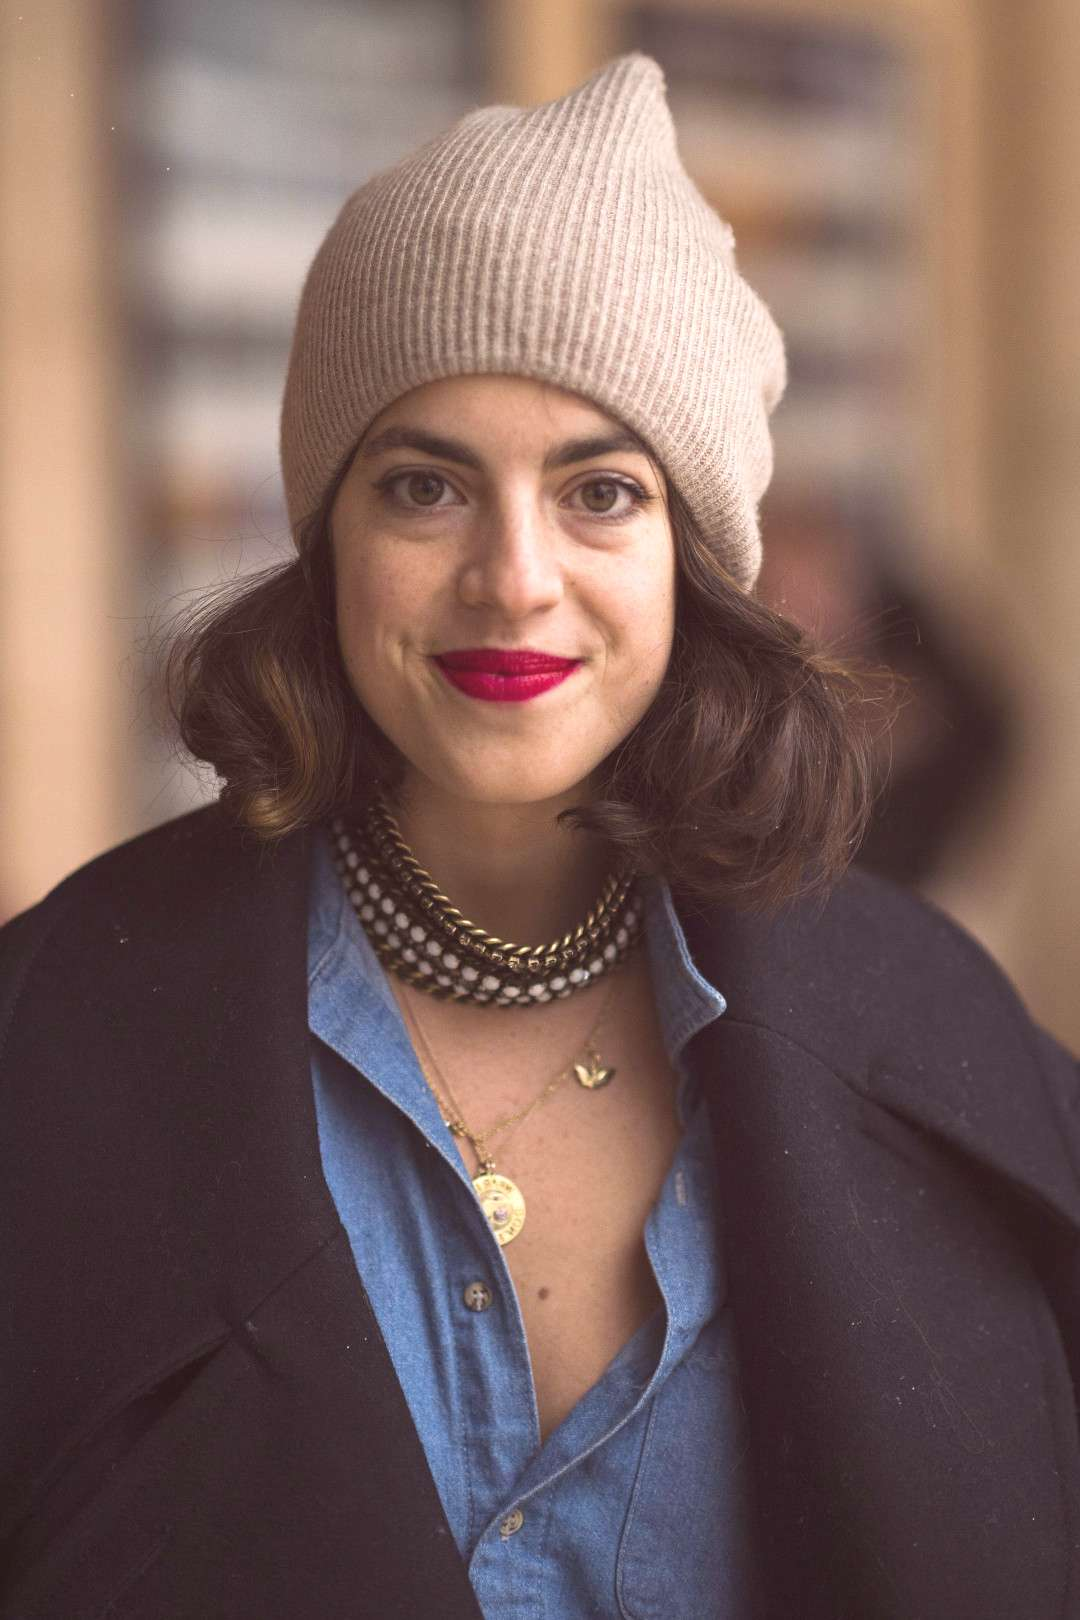 Beauty Street Style: Soak Up Some Inspiration With These NYFW Snaps Leandra Medine, aka the Man Rep